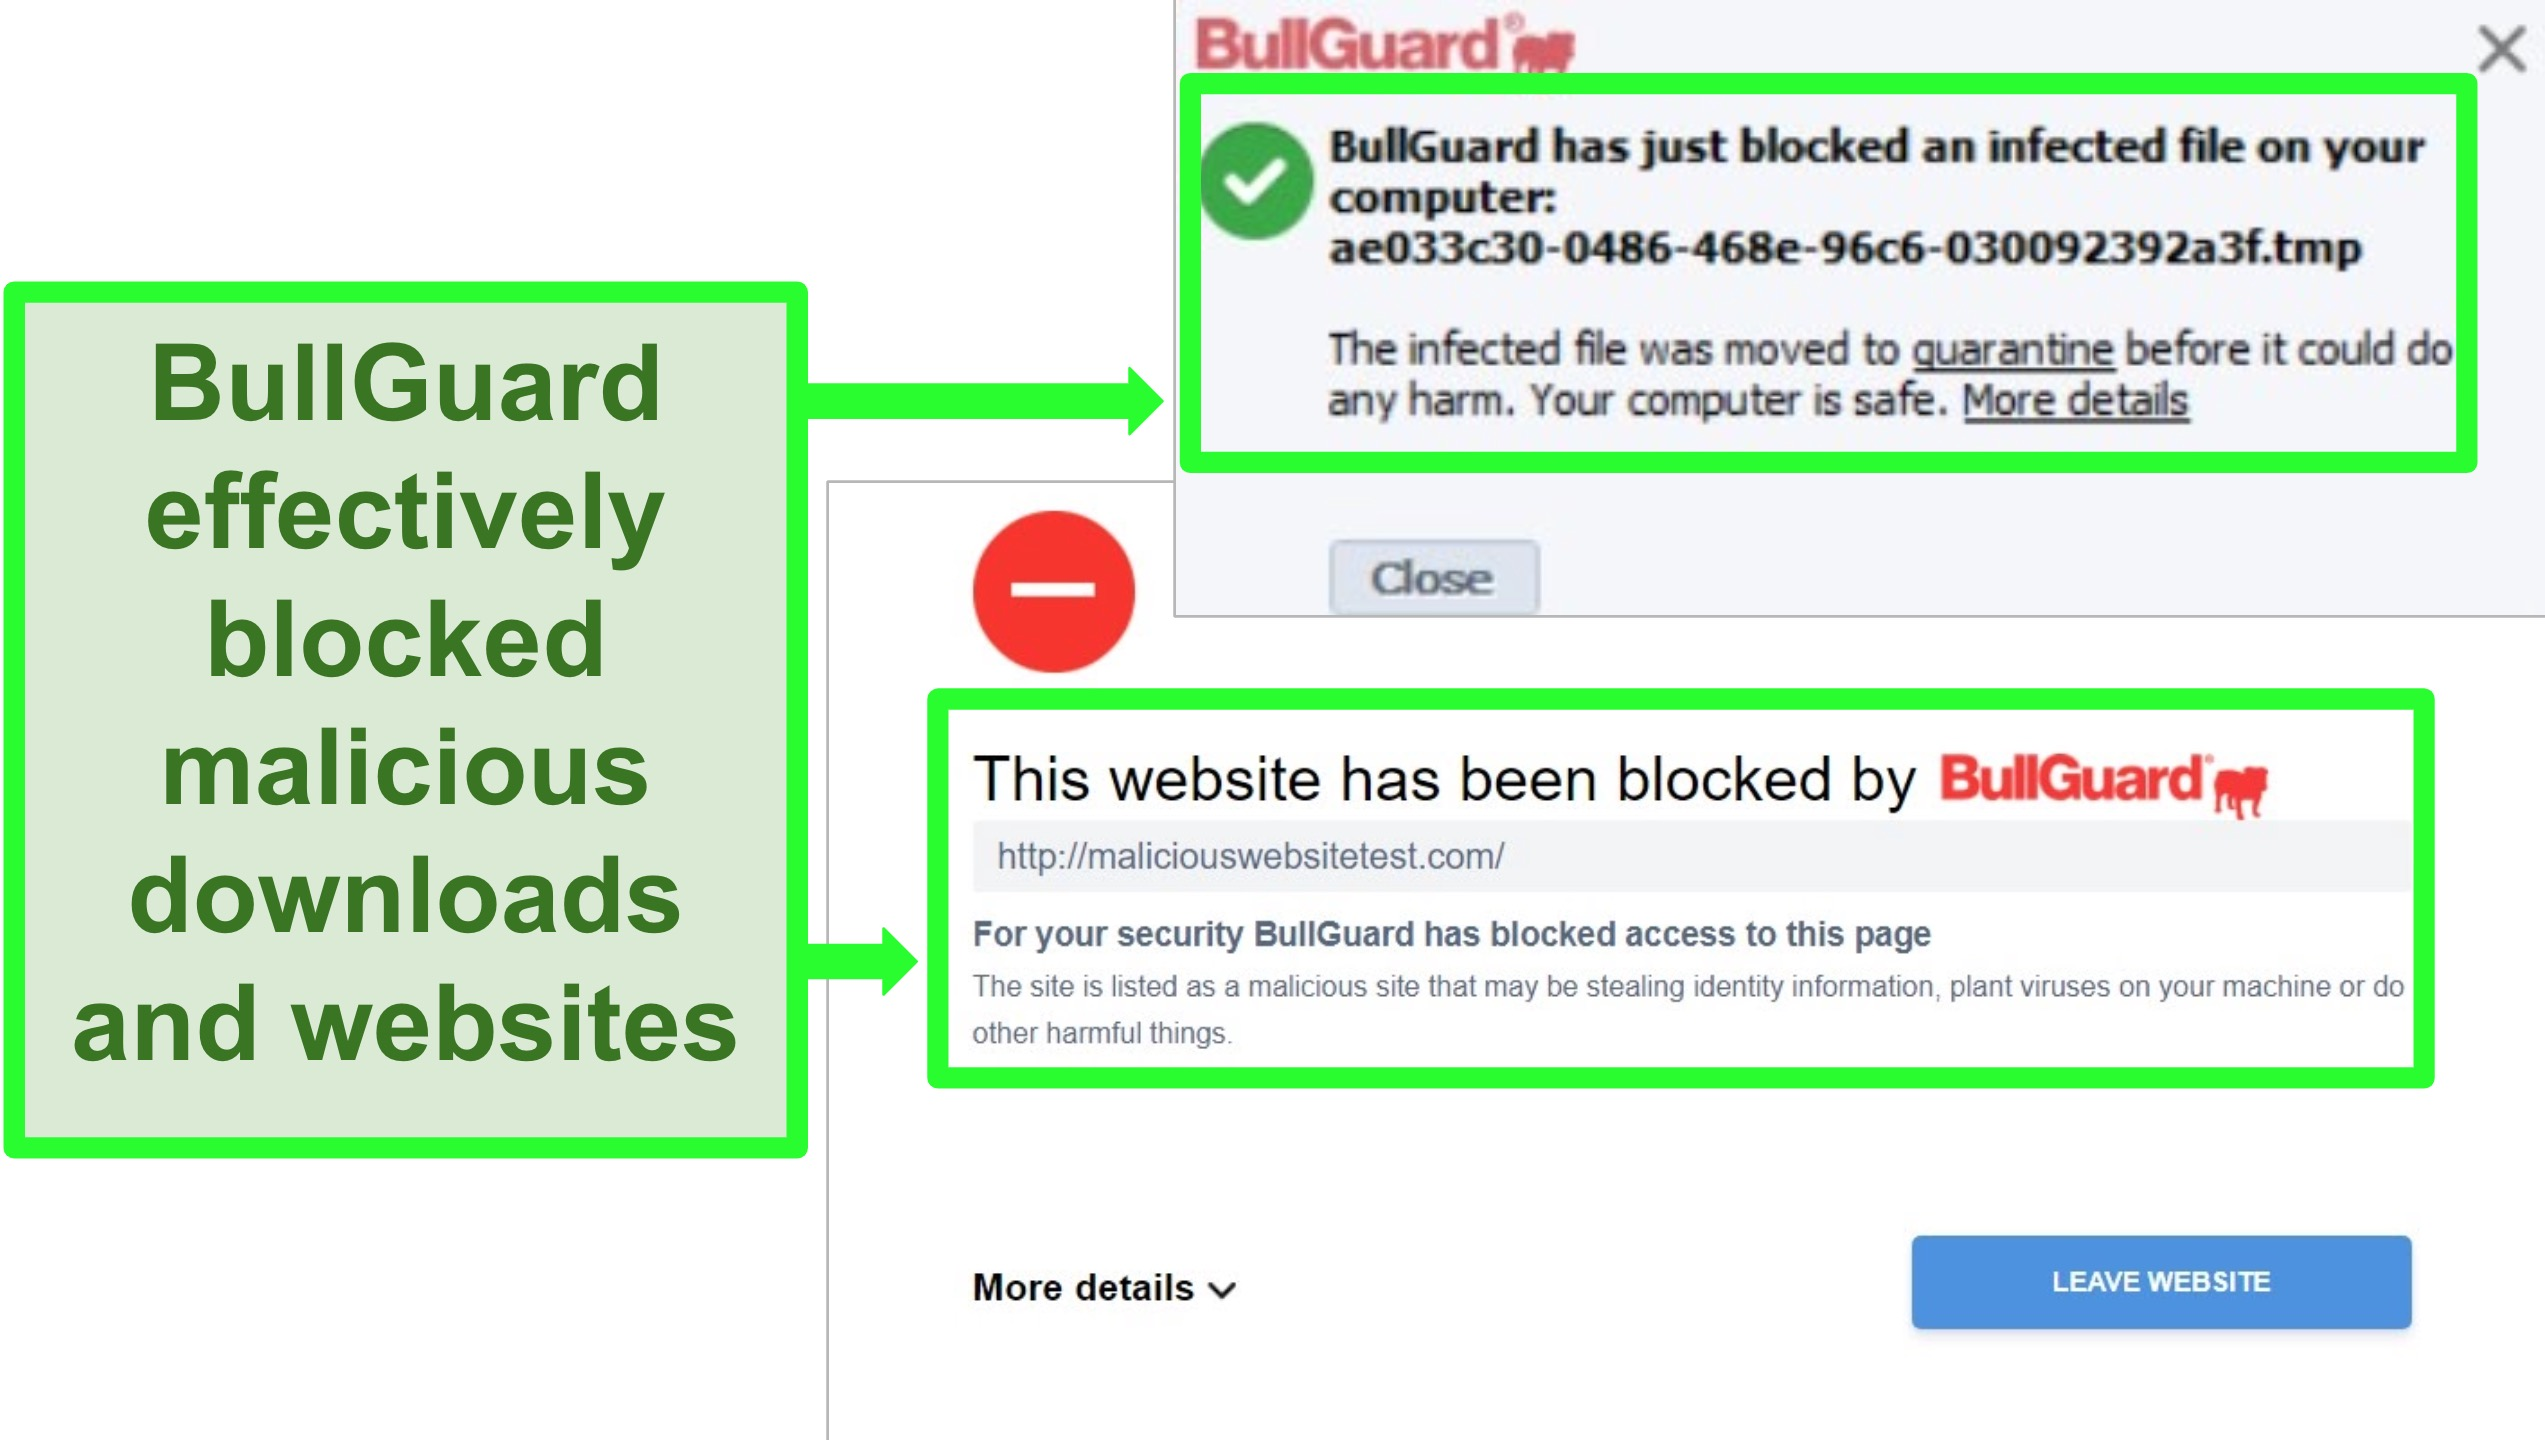 Screenshot of BullGuard's website and download blocks.